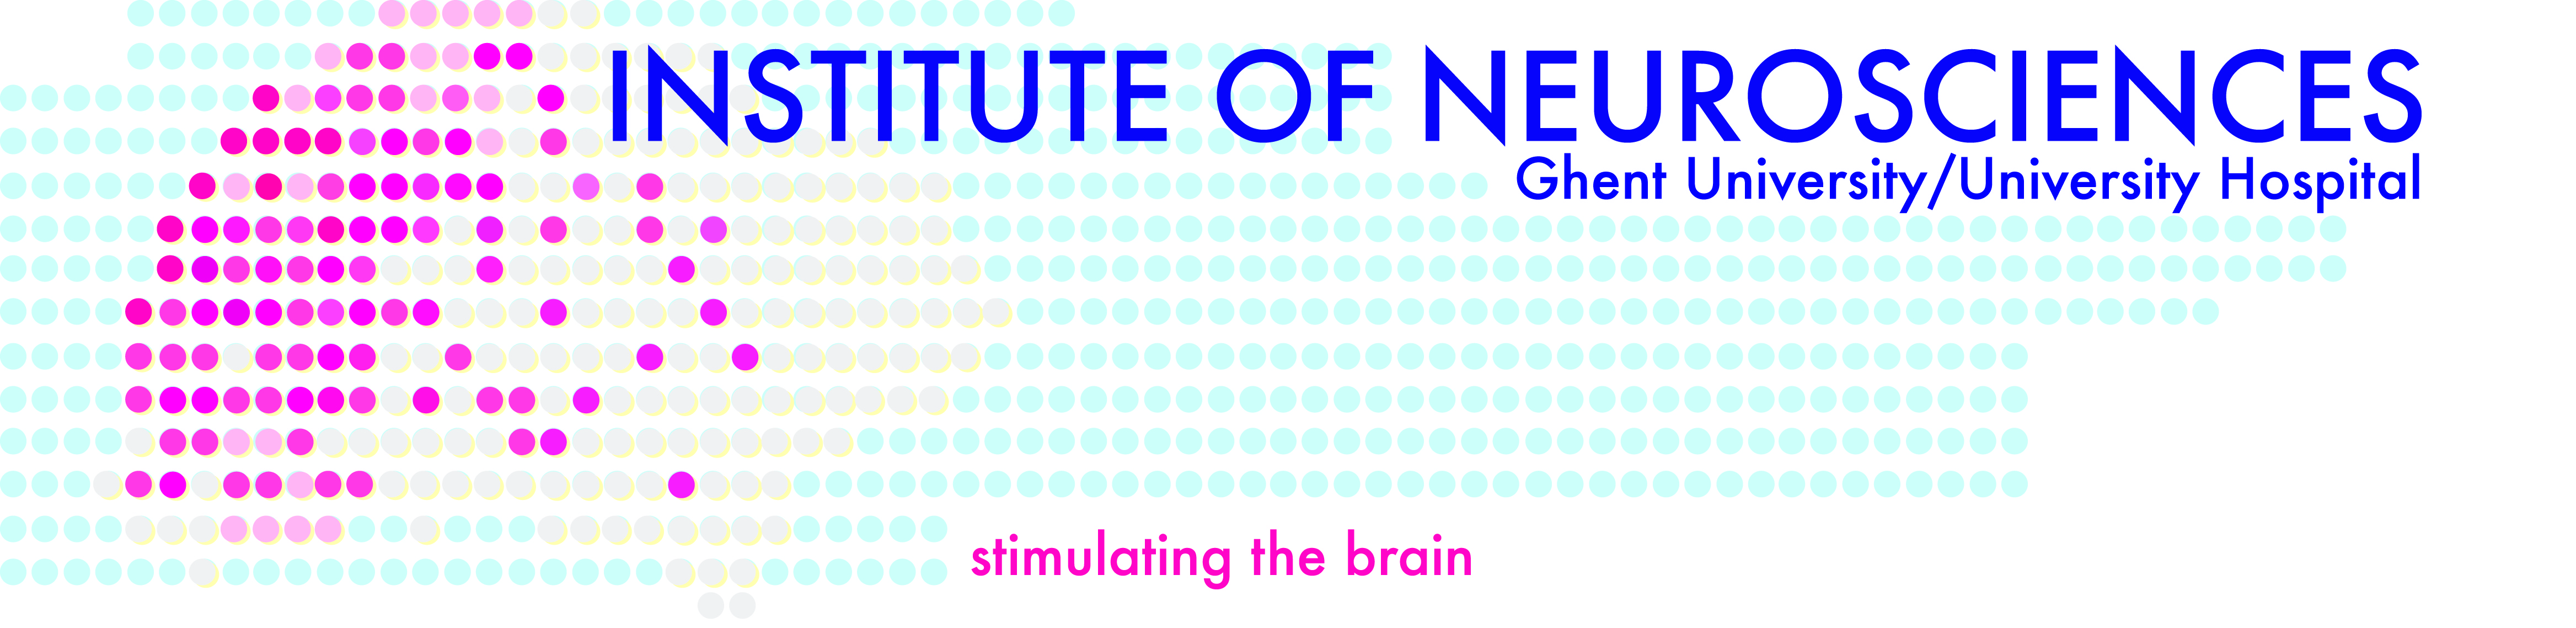 Institute for Neuroscience logo